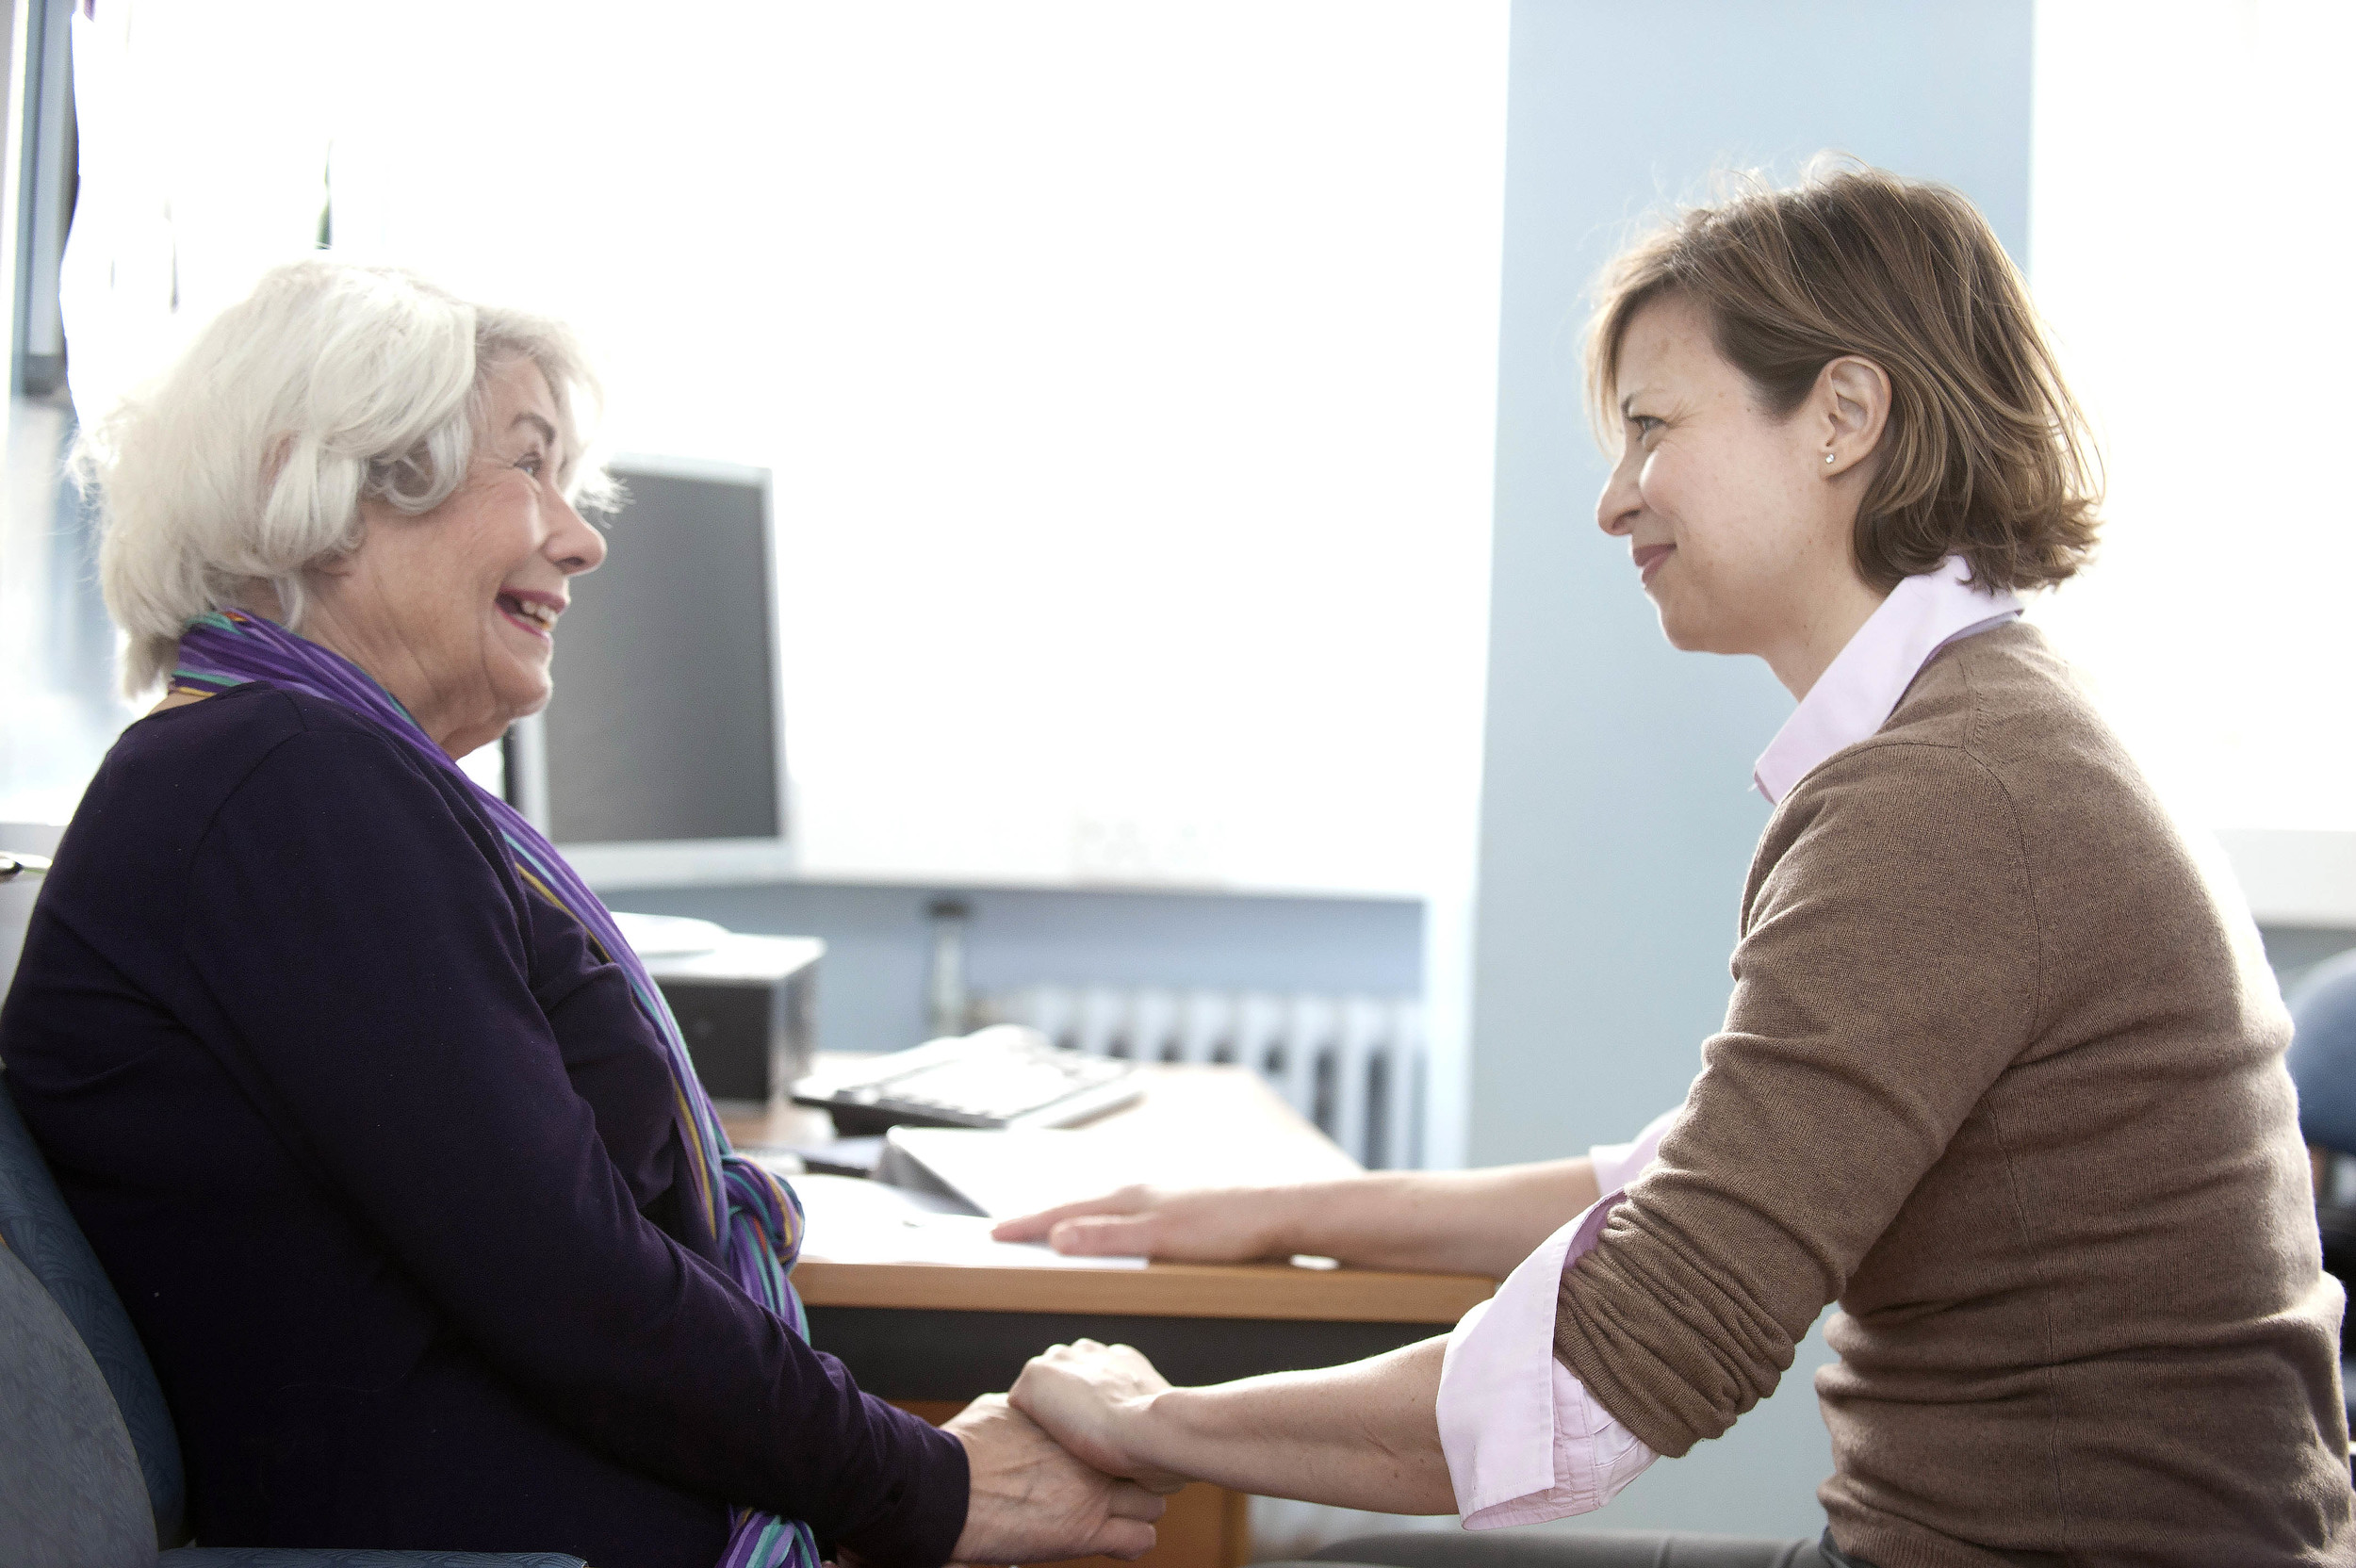 A medical professional consulting with a patient holding her hand smiling